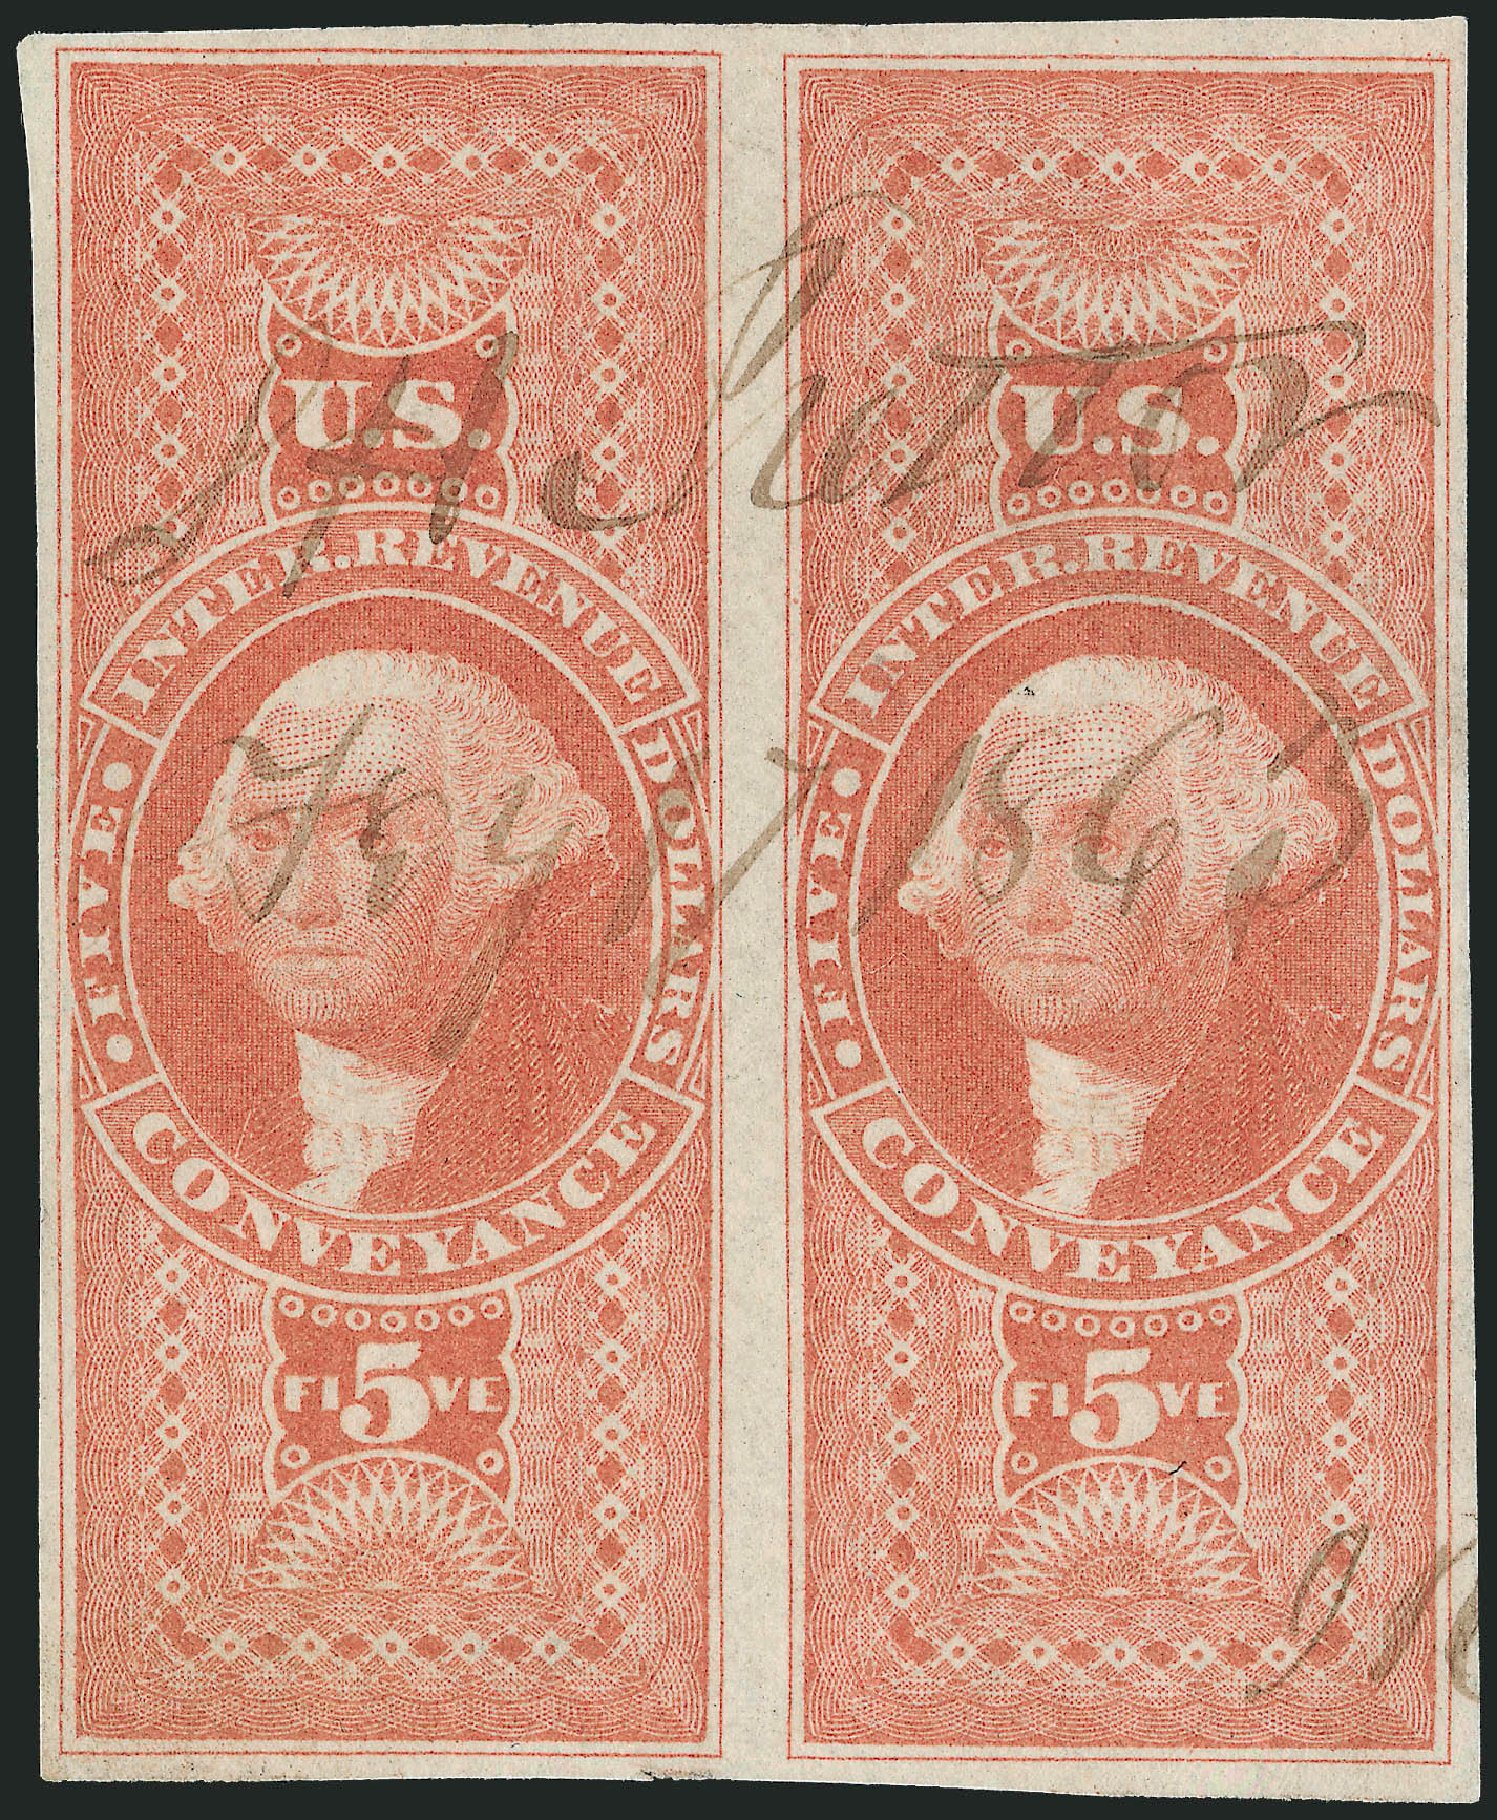 US Stamps Prices Scott Catalog #R89 - US$5.00 1862 Revenue Conveyance. Robert Siegel Auction Galleries, Dec 2008, Sale 967, Lot 5240